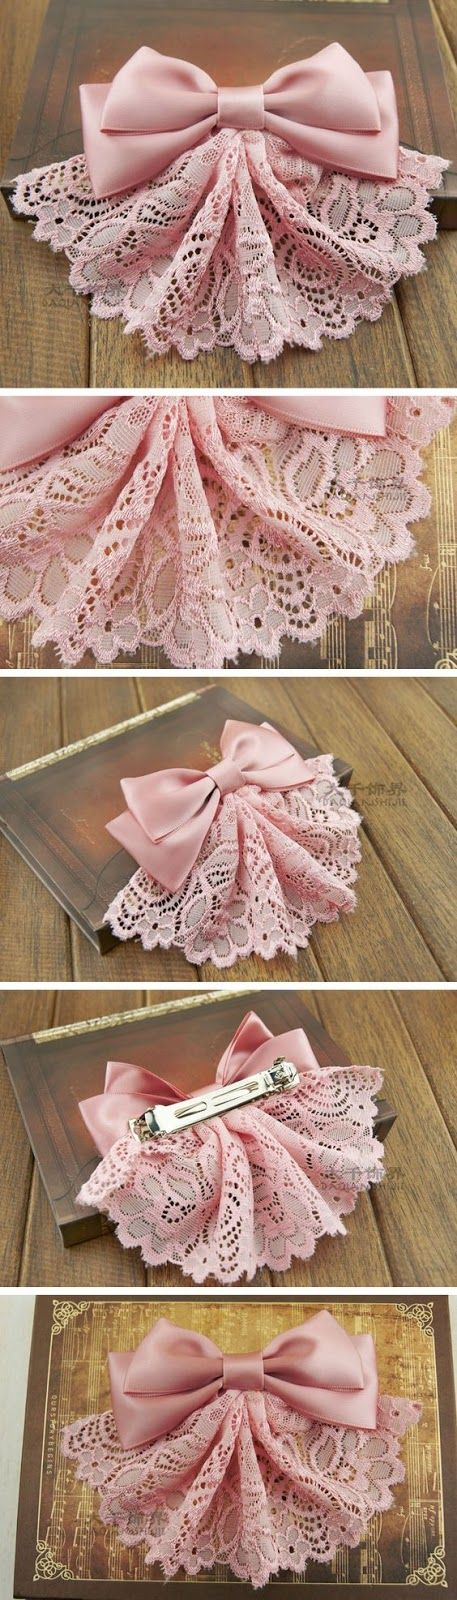 Fashiontrends4everybody: Lace bow hair accessories